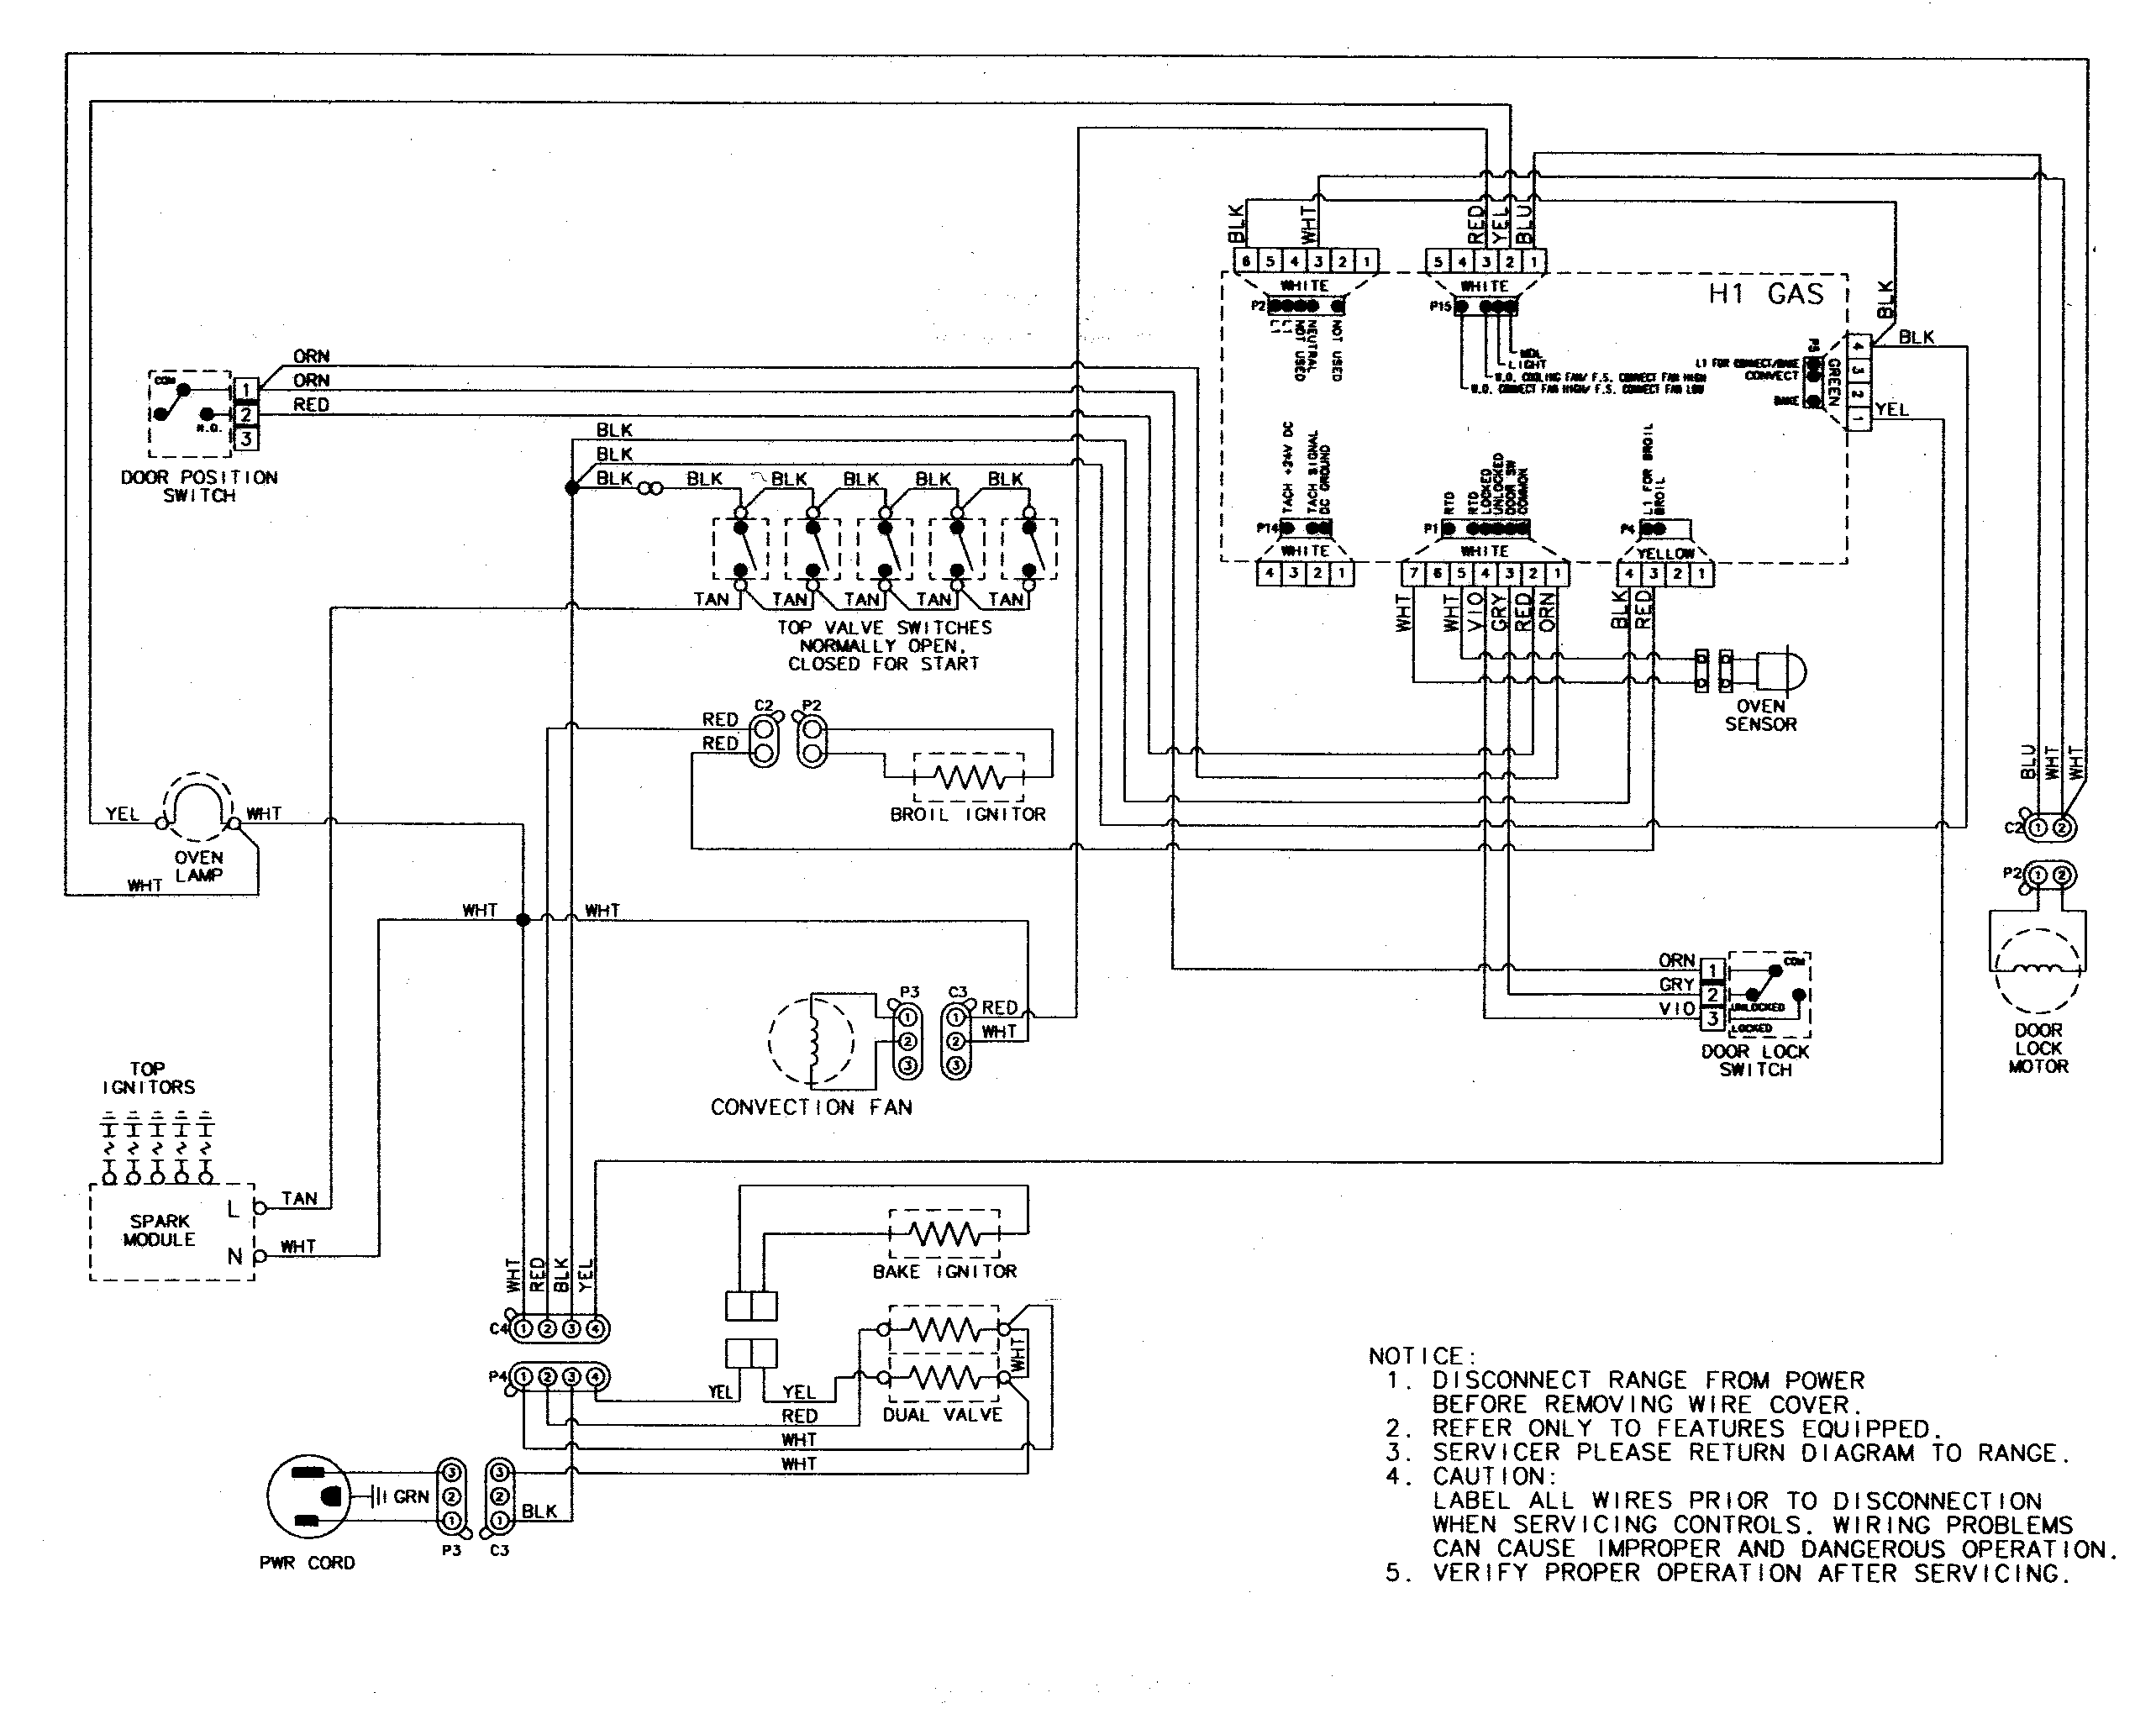 amana gas dryer wiring diagrams amana discover your wiring amana stove wiring diagram amana car wiring diagram clothes dryer troubleshooting